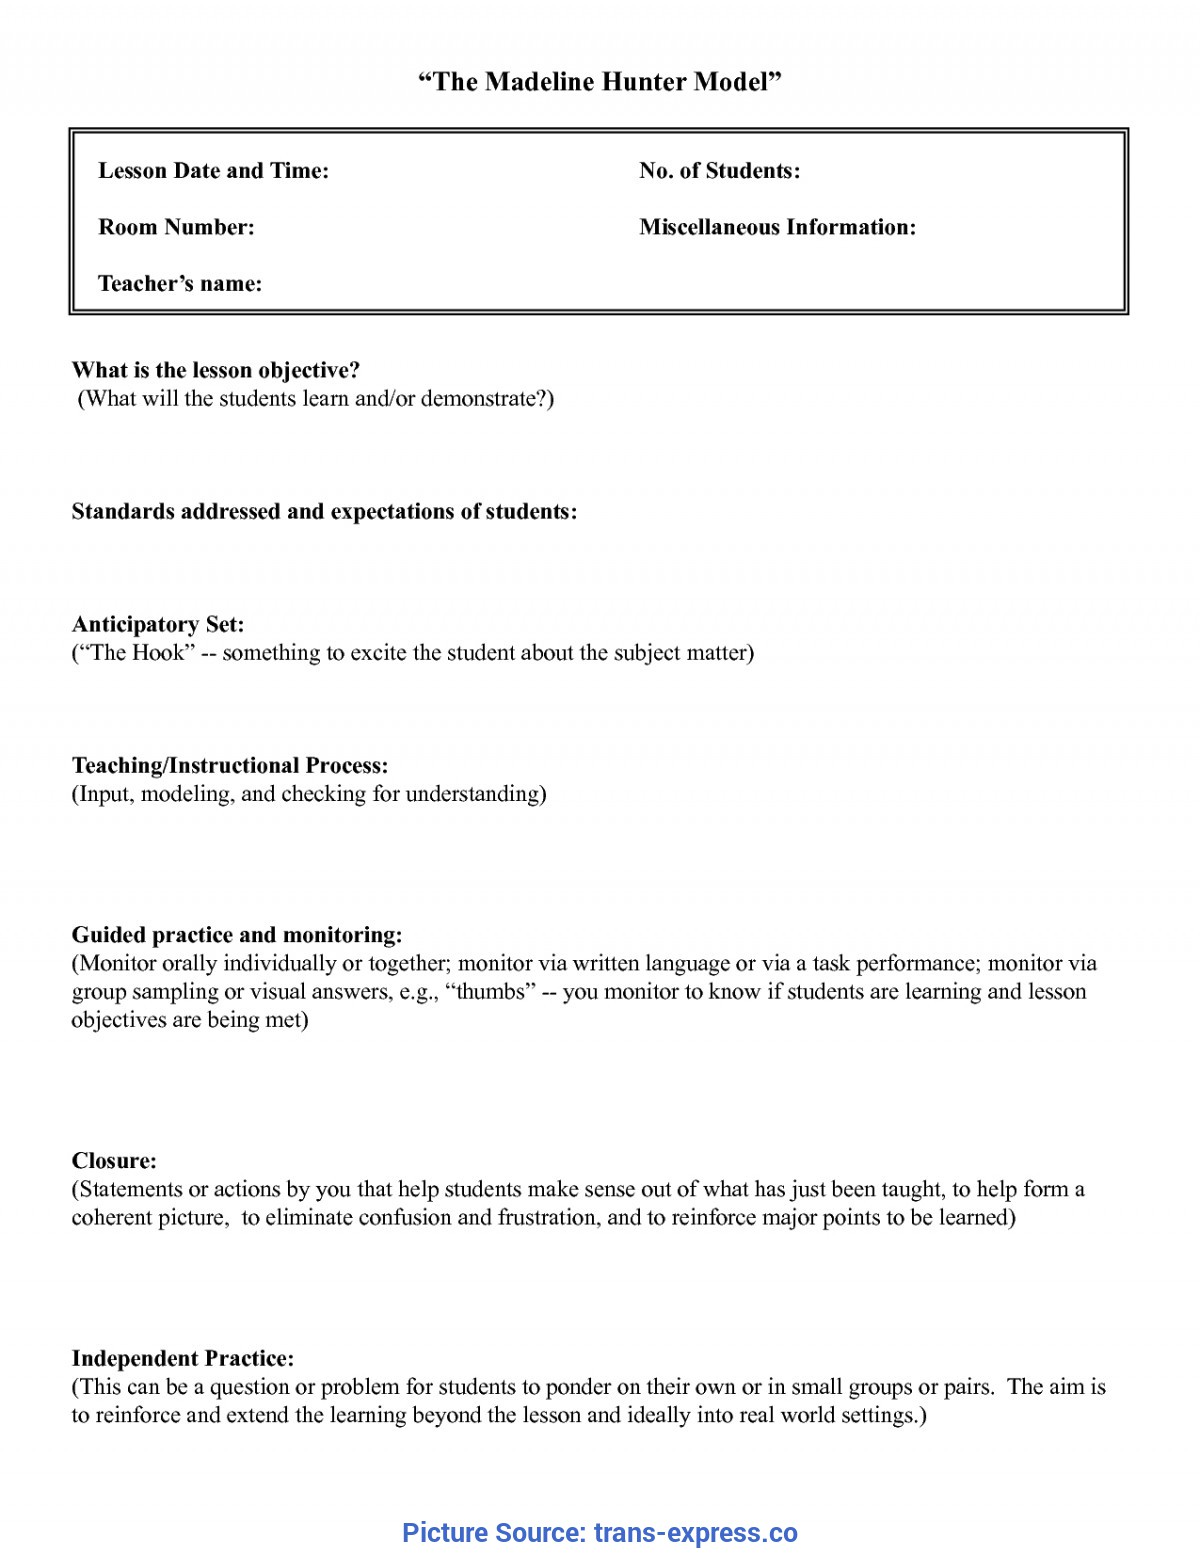 Unusual Edtpa Lesson Plan Template Nj Word Lesson Plan Template Indemnity Happy Birthday Certificat